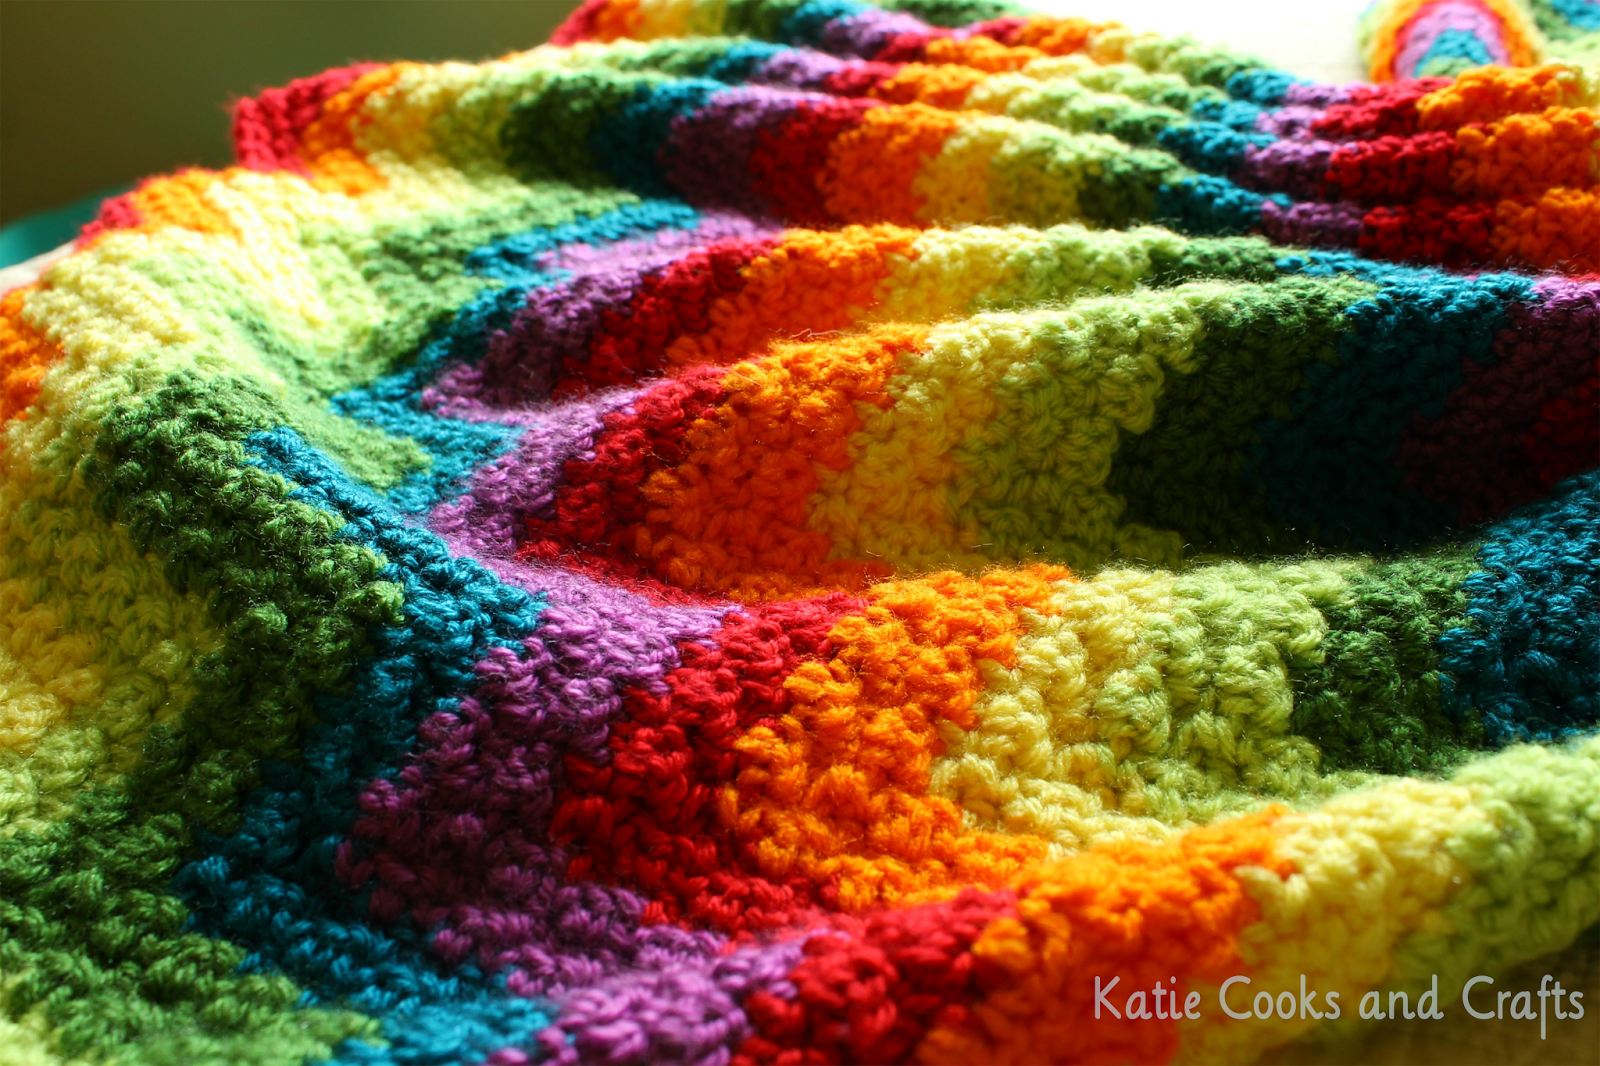 Katie Cooks and Crafts: Rumpled Ripple Rainbow Crochet Baby Afghan ...